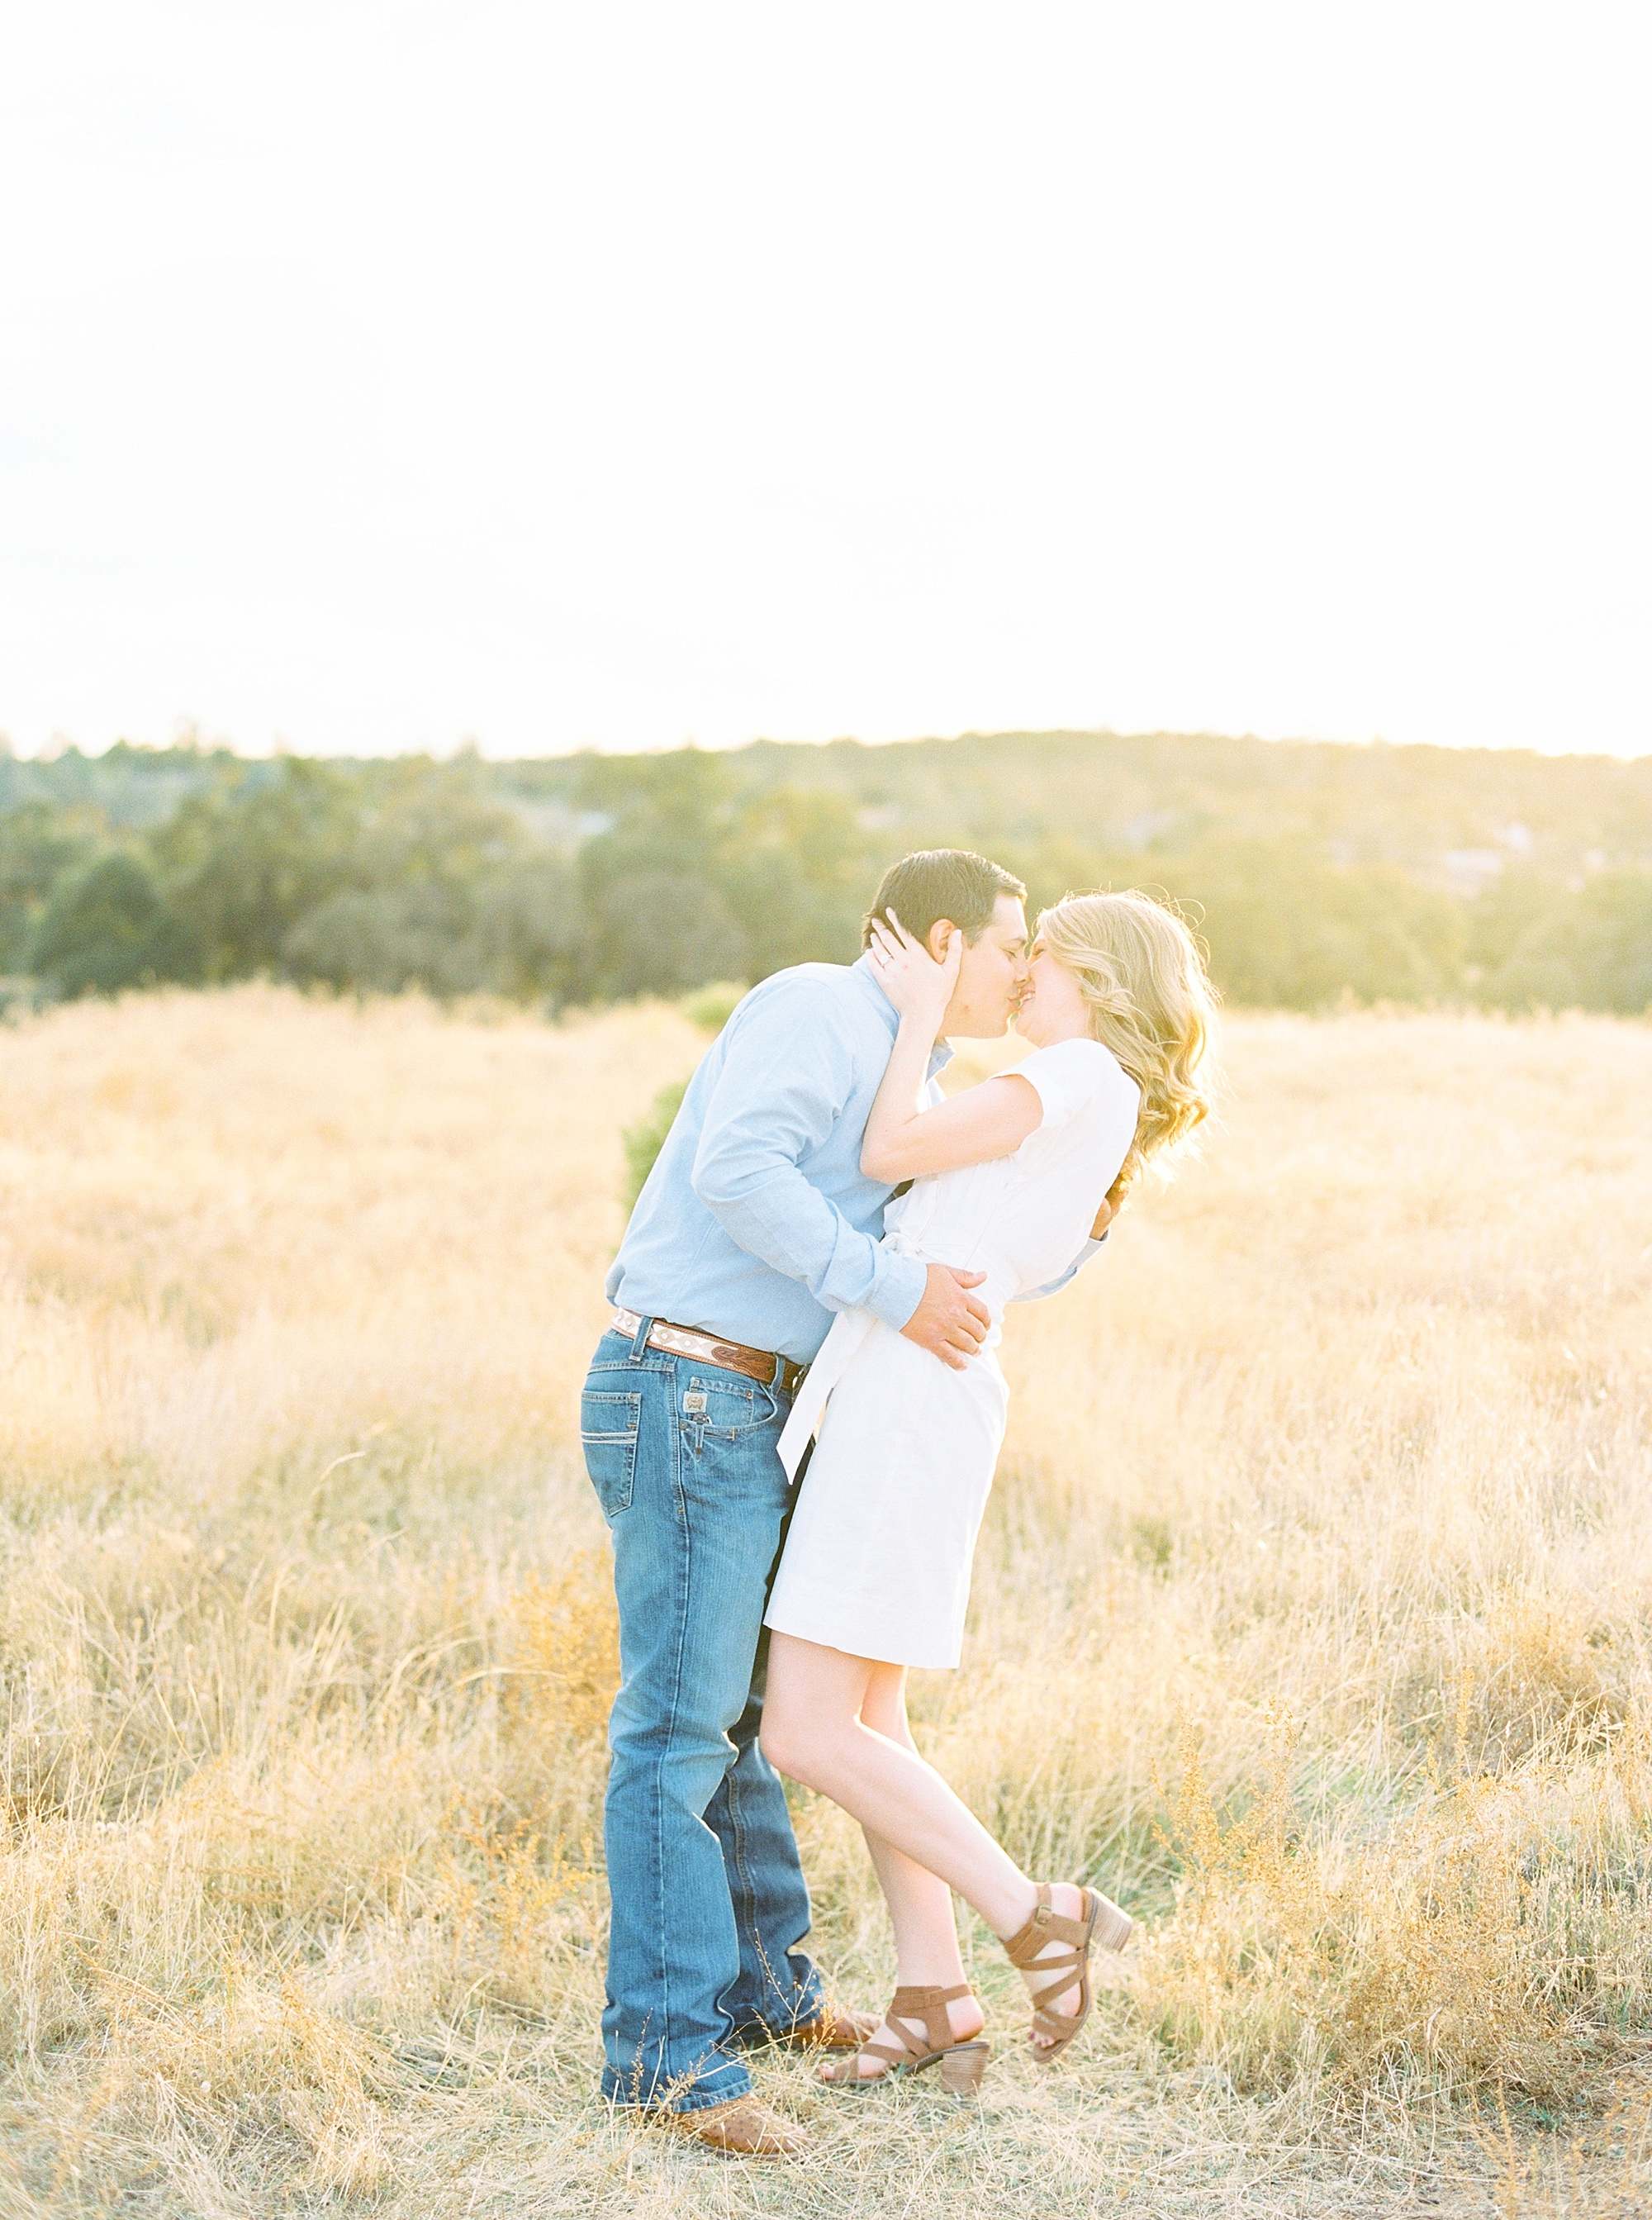 Golden Hills Engagement Session - Film Engagement Session - Ashley Baumgartner - Sacramento Wedding Photography - Stone Barn Ranch Wedding Couple_0015.jpg